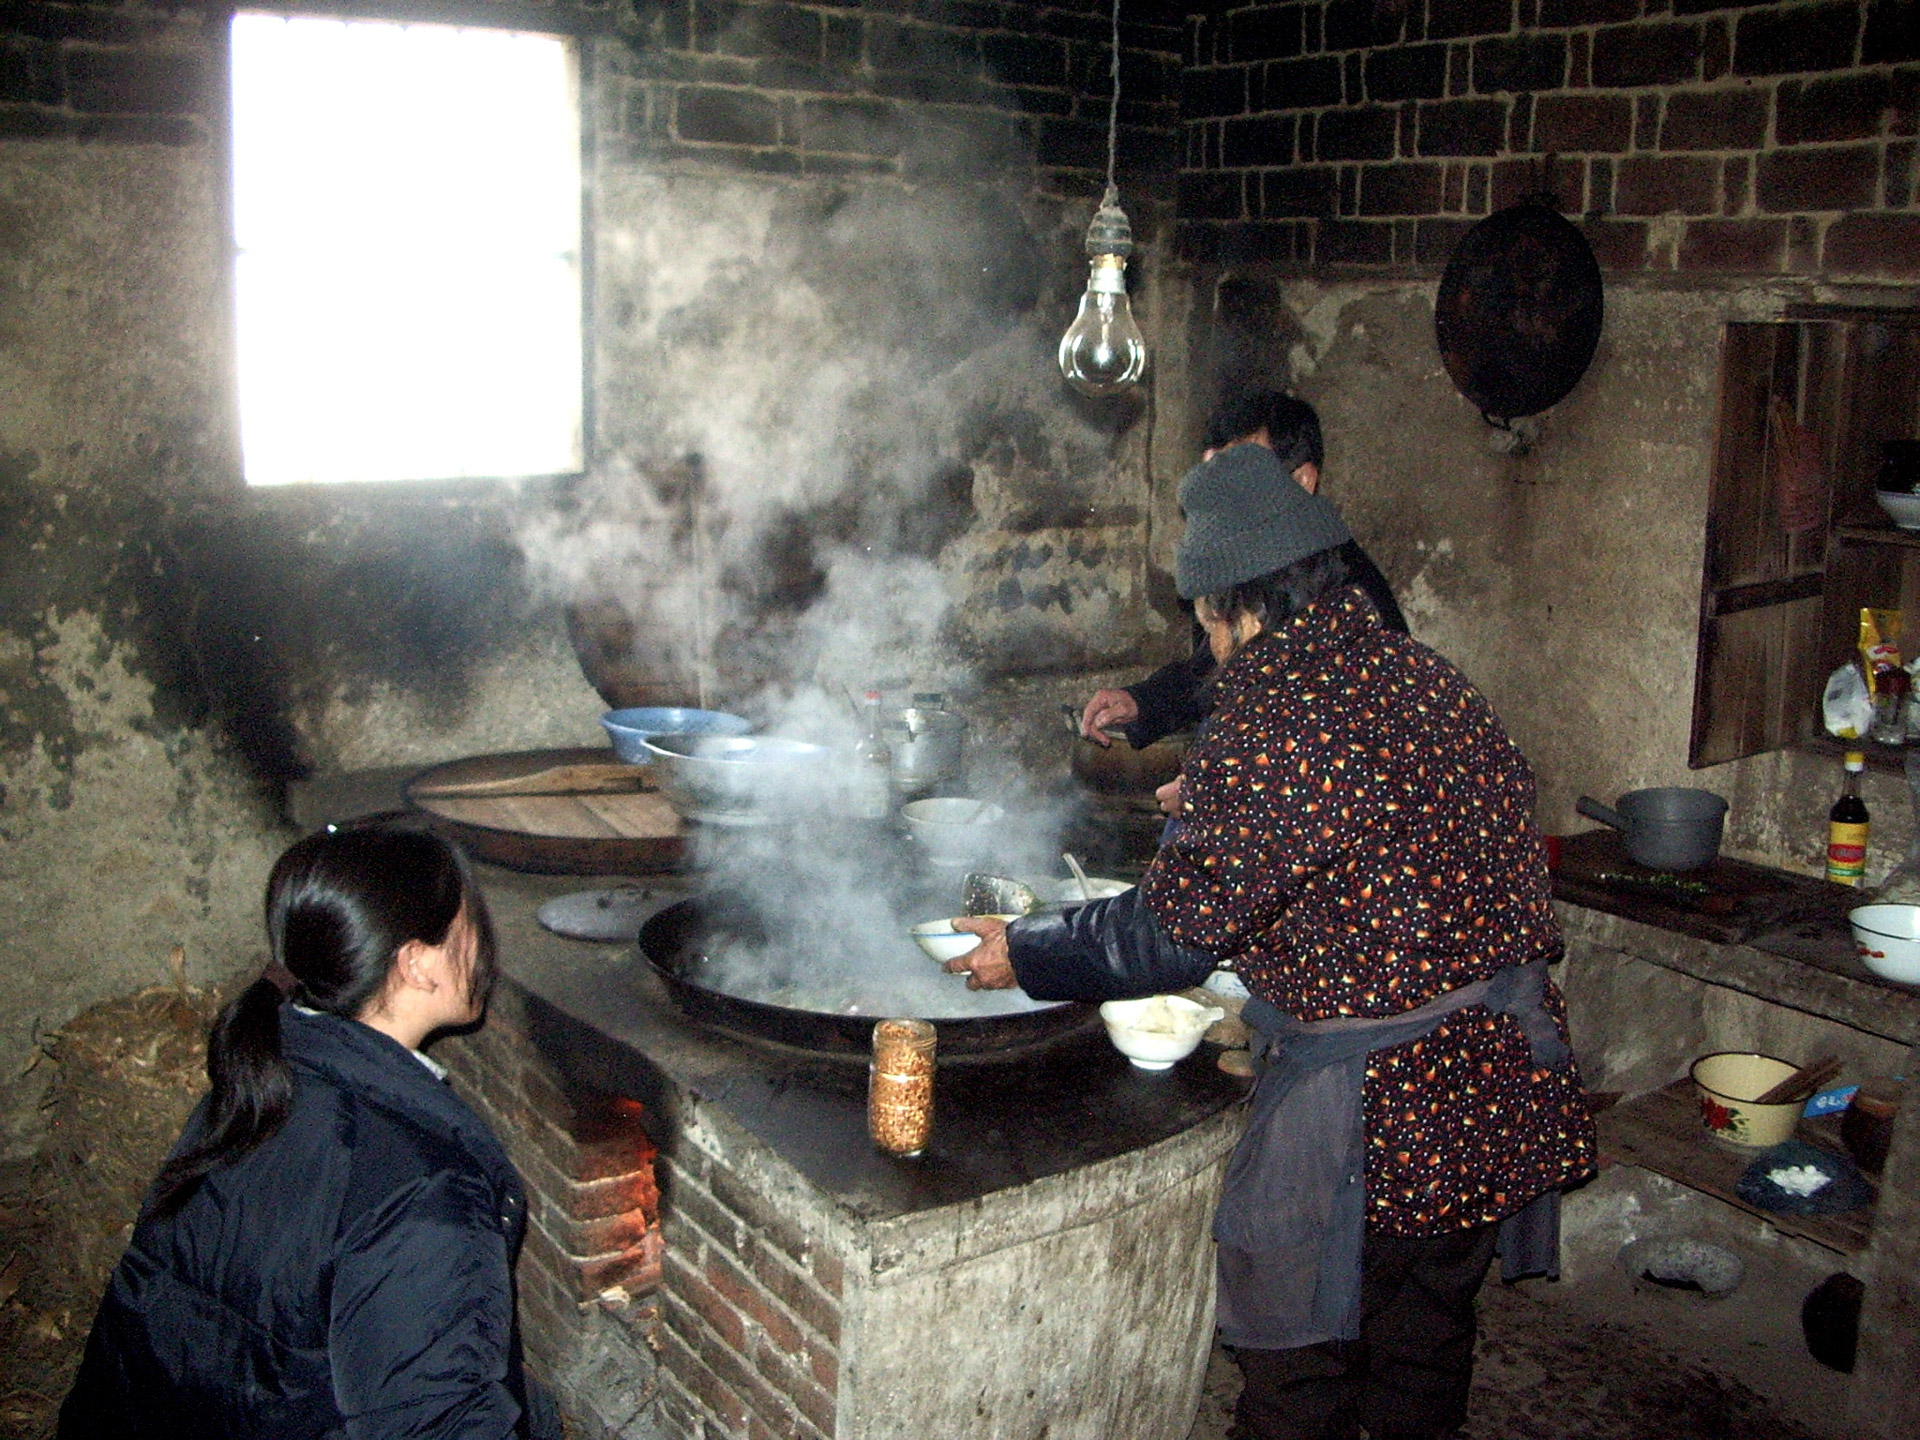 Kitchen Rural Countryside Cook Cooking Free Photo From Needpix Com